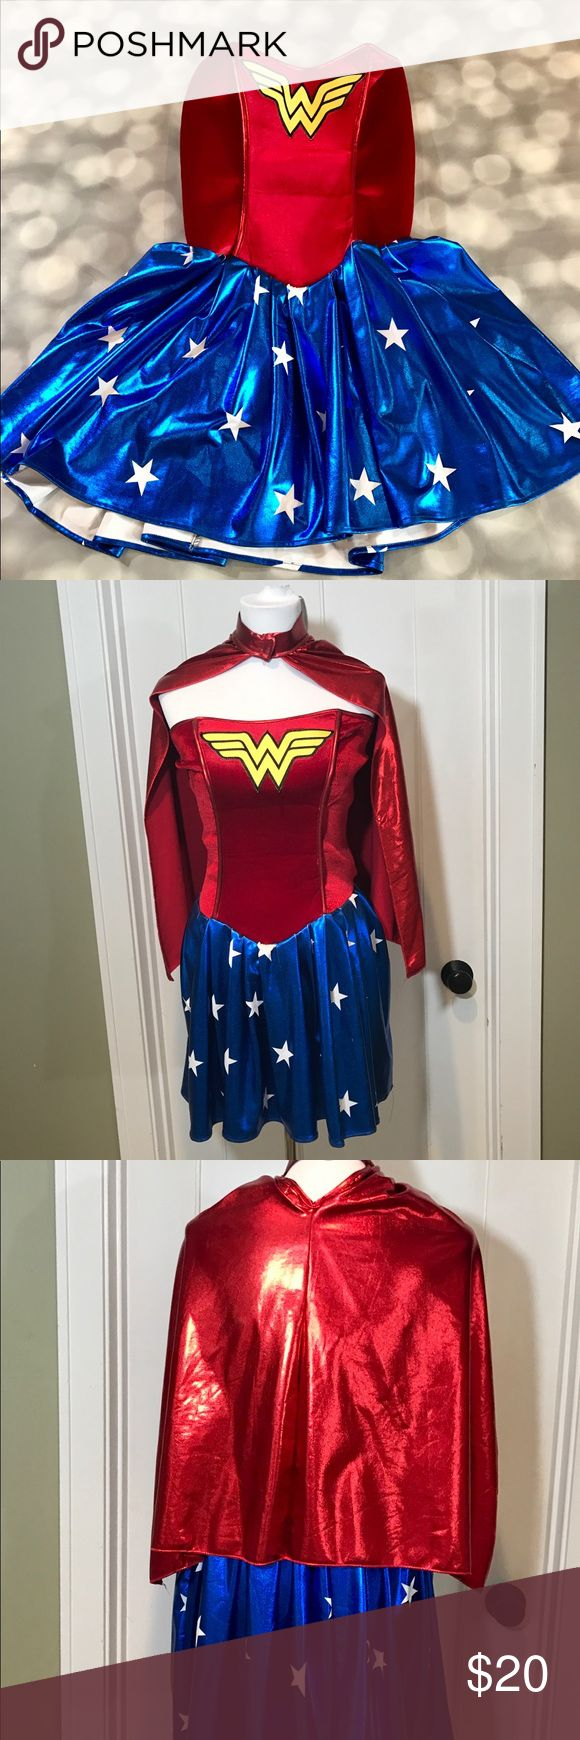 Wonder Woman costume and cape Kill it this Halloween in this fun little number Dresses